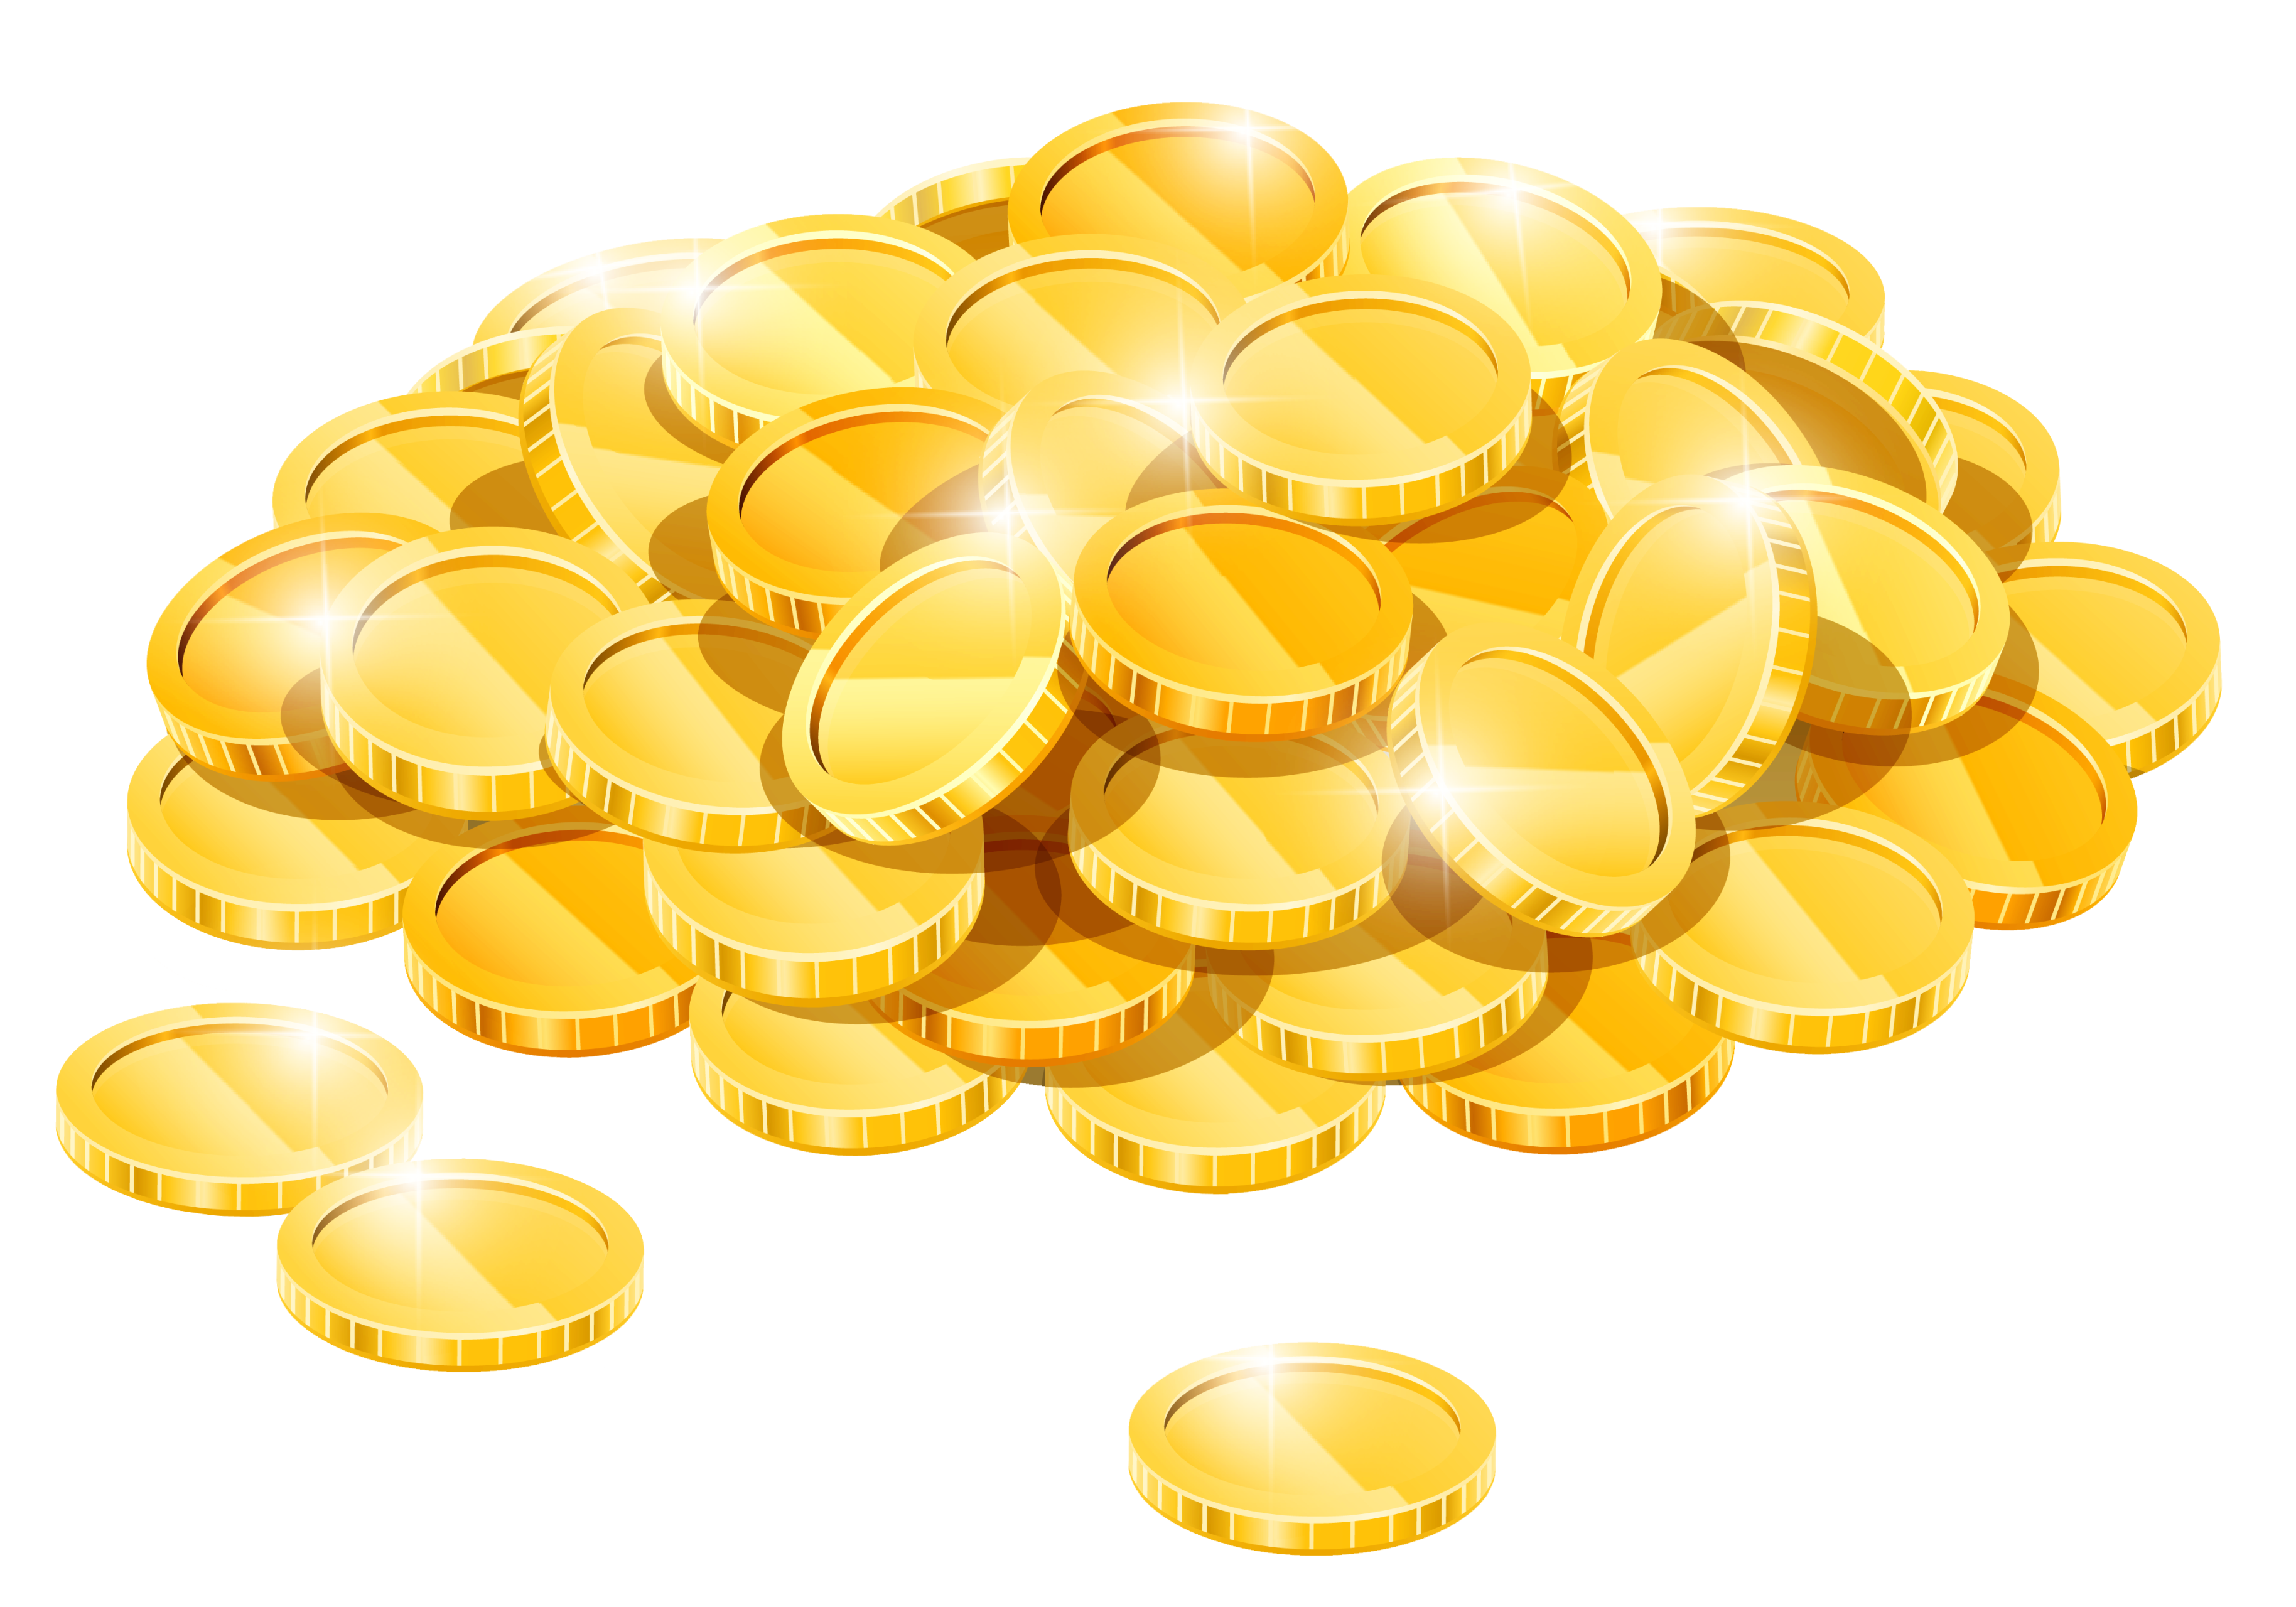 Gold Coins PNG Image Gold coins, Coins, Clip art